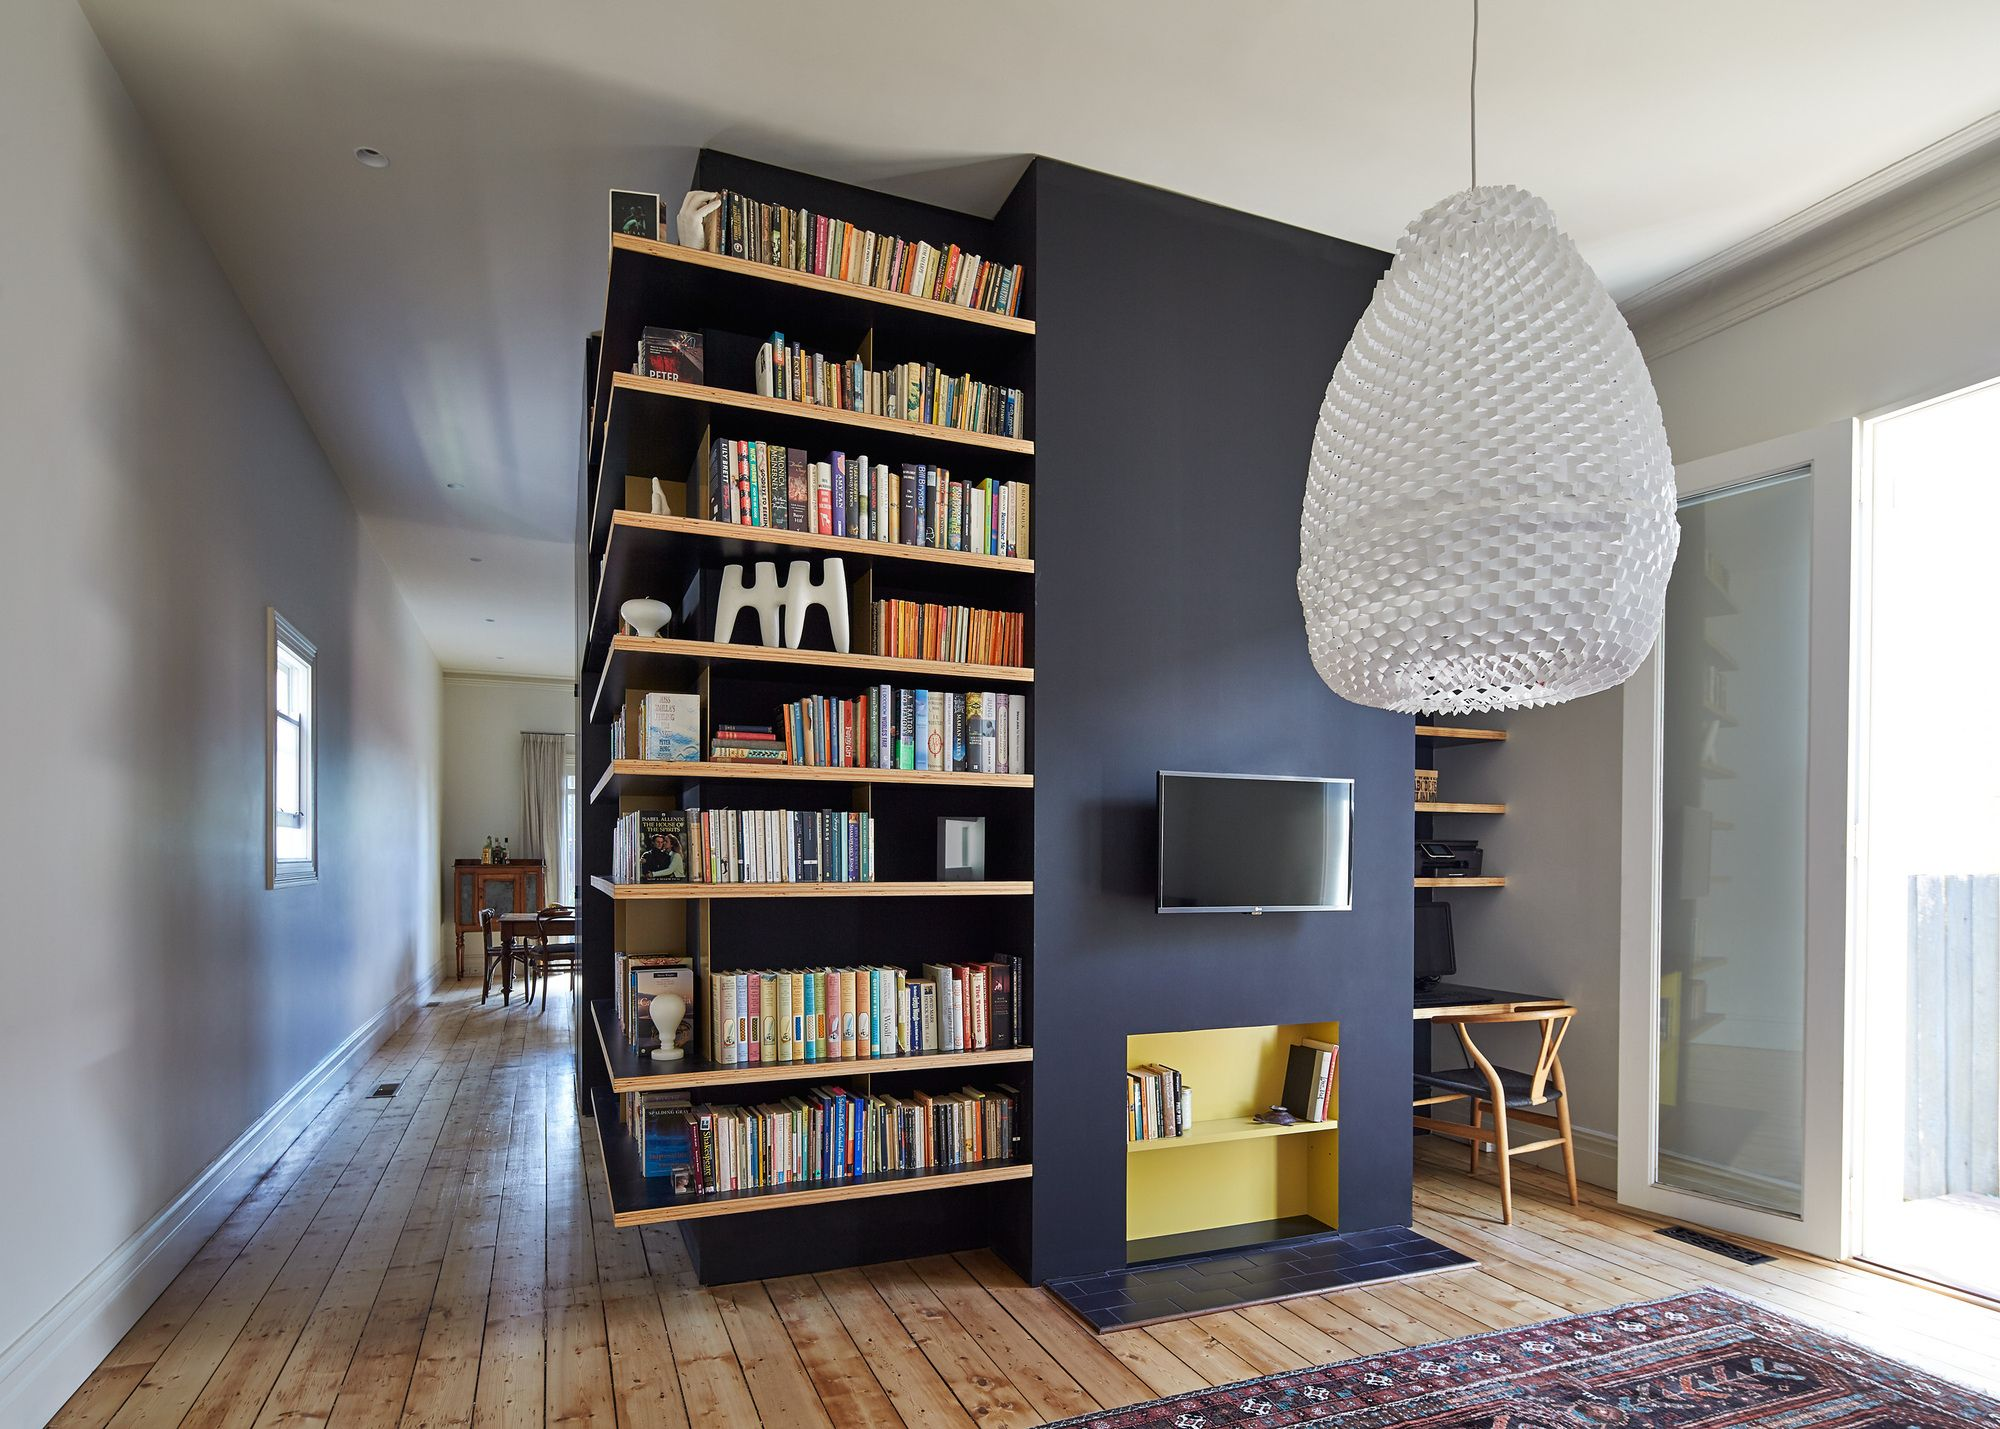 House Renovation Adds Unusual Deck And Shelving Interior House Design Home Decor